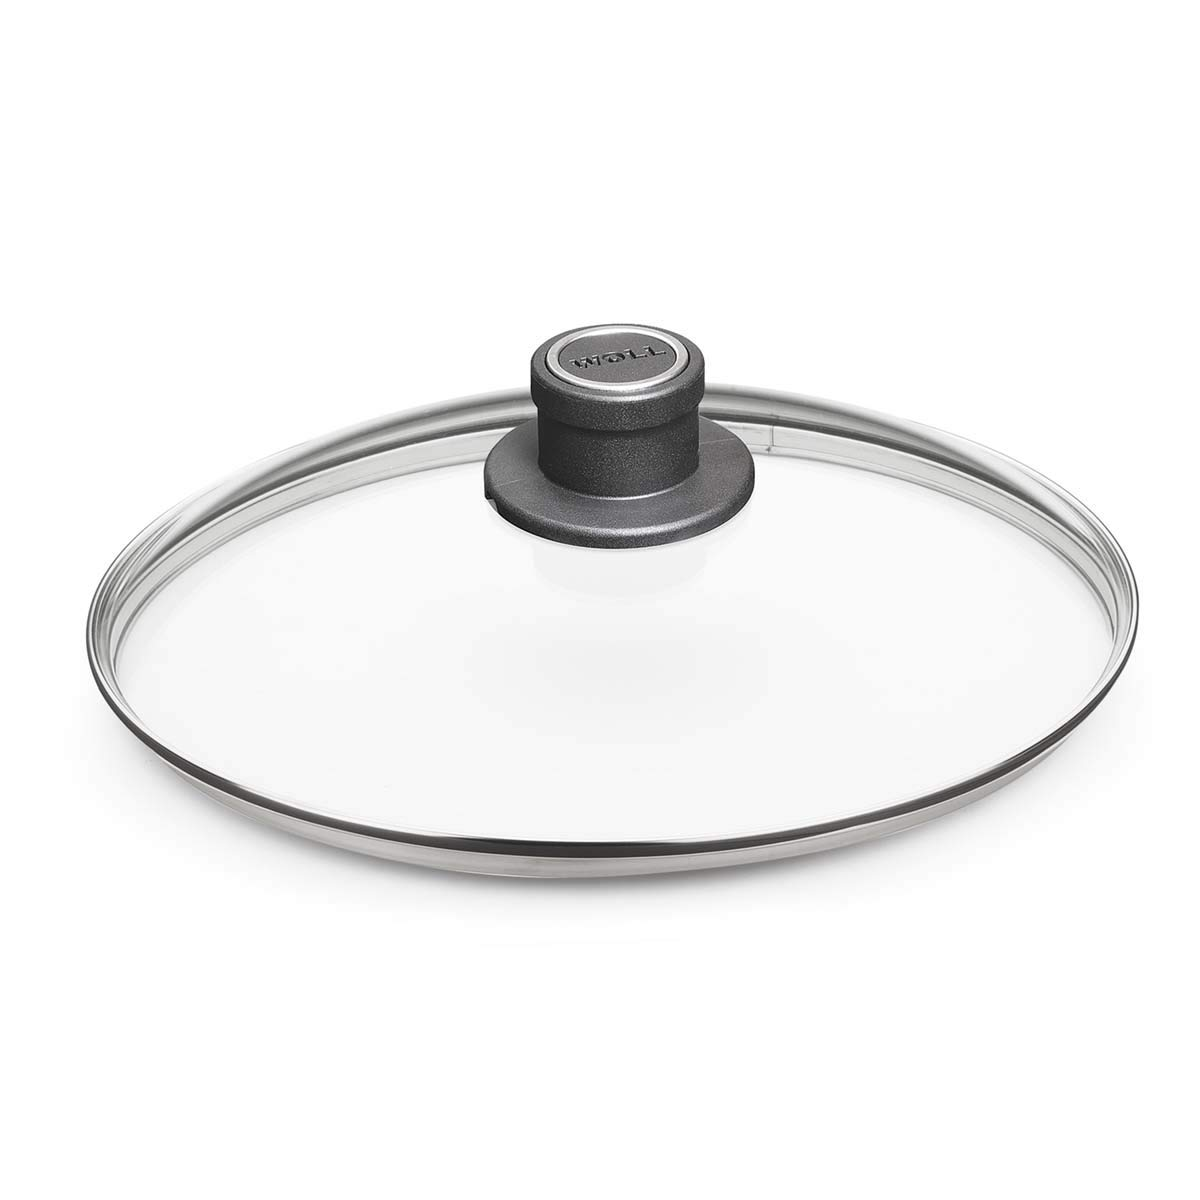 "Woll Tempered Glass with Stainless Steel Rim and Vented Knob Round Lid, 10-1/4"", Clear"